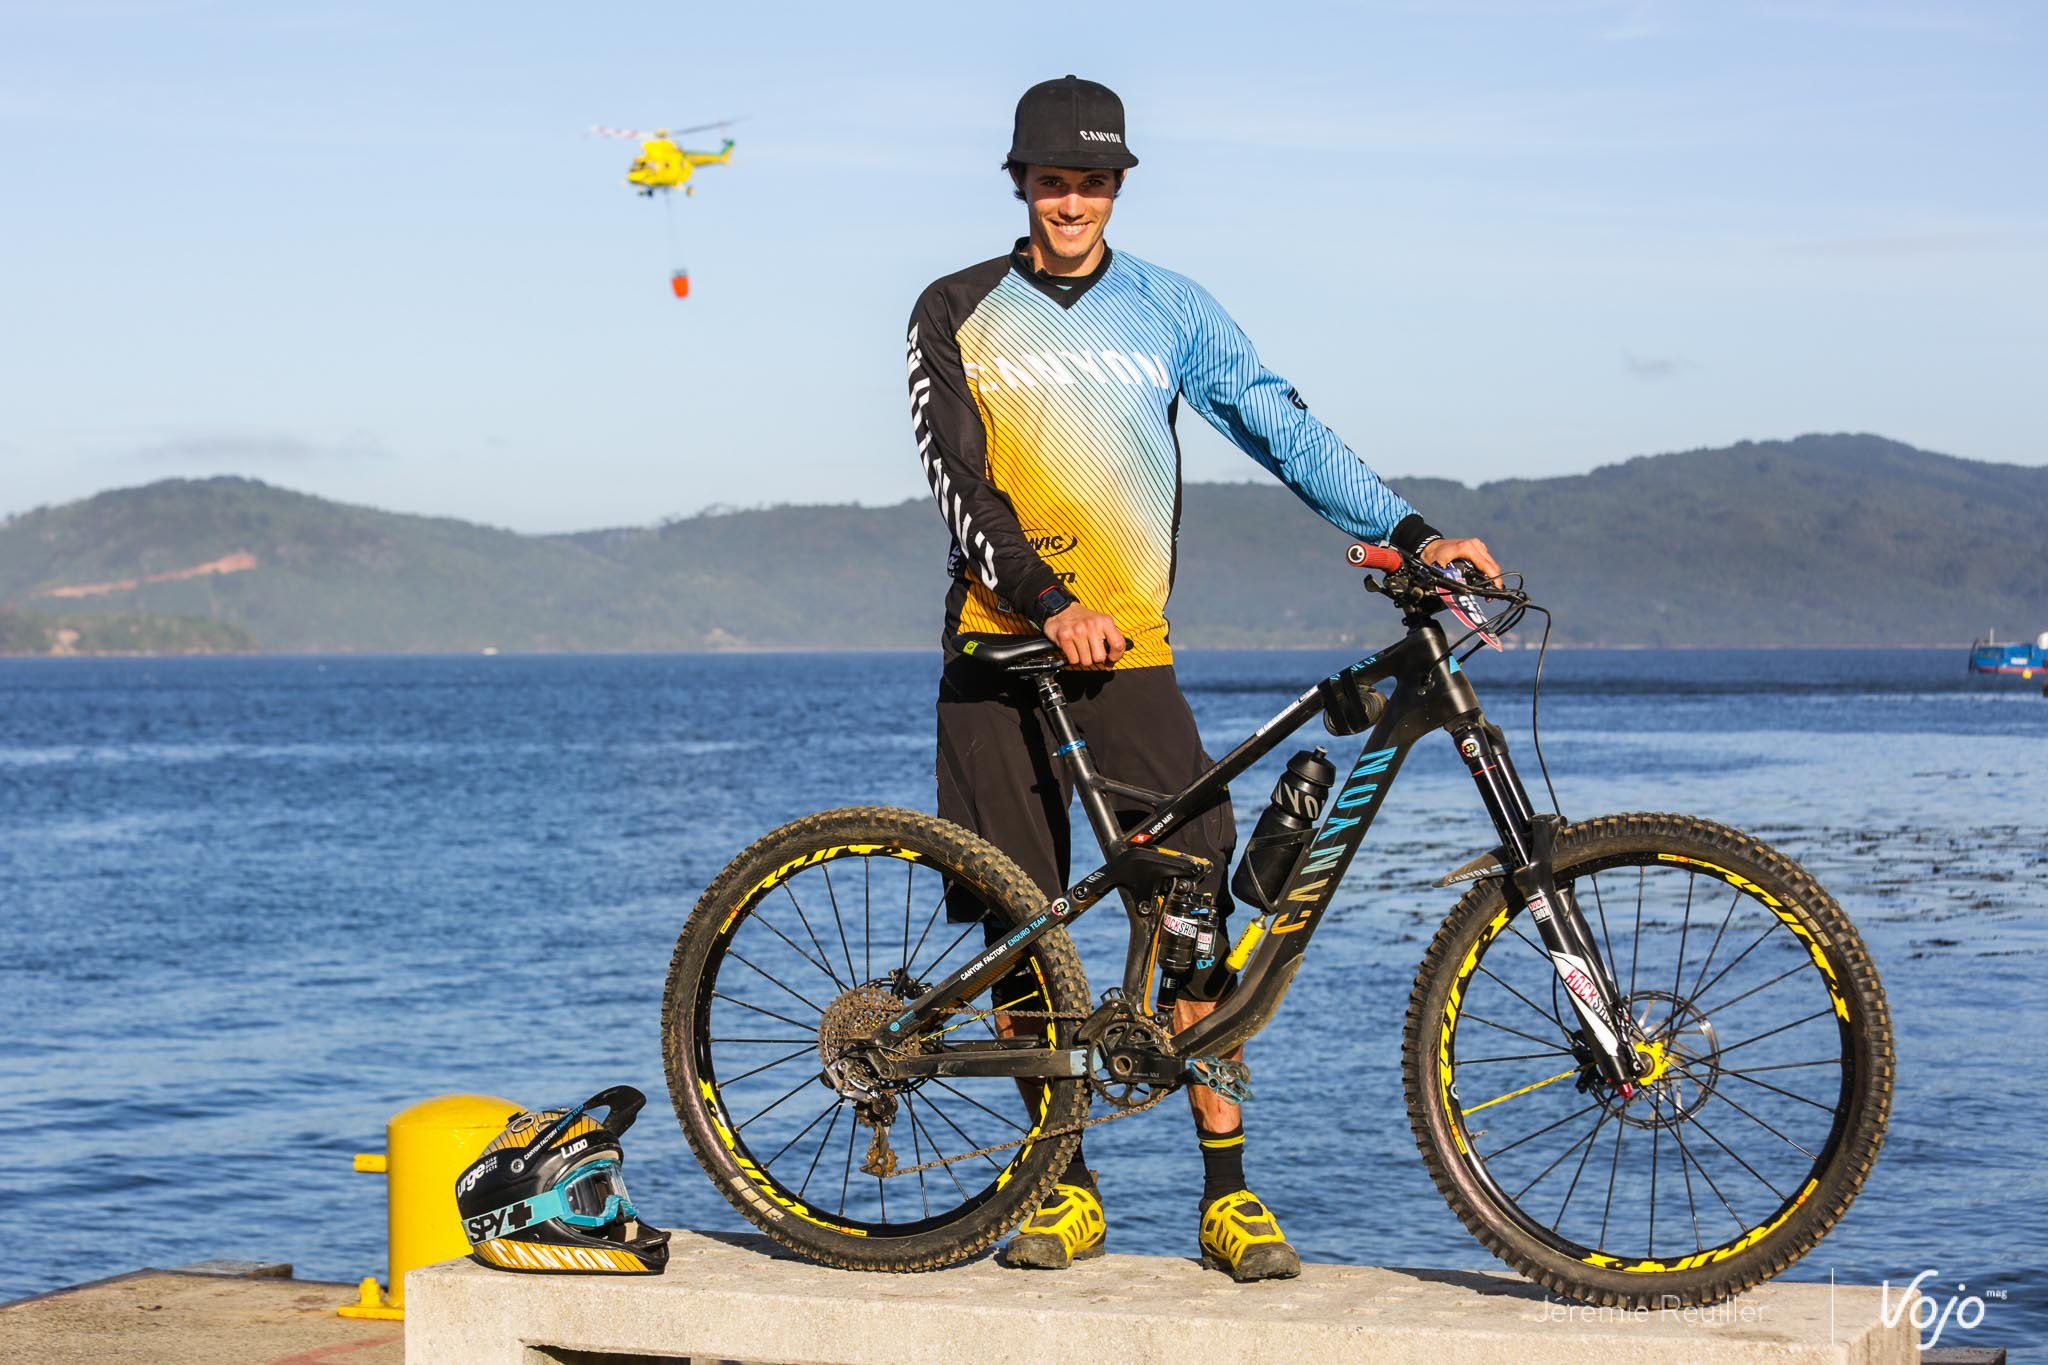 Bike_Check_EWS_Ludo_May_Copyright_Reuiller_Vojomag-1